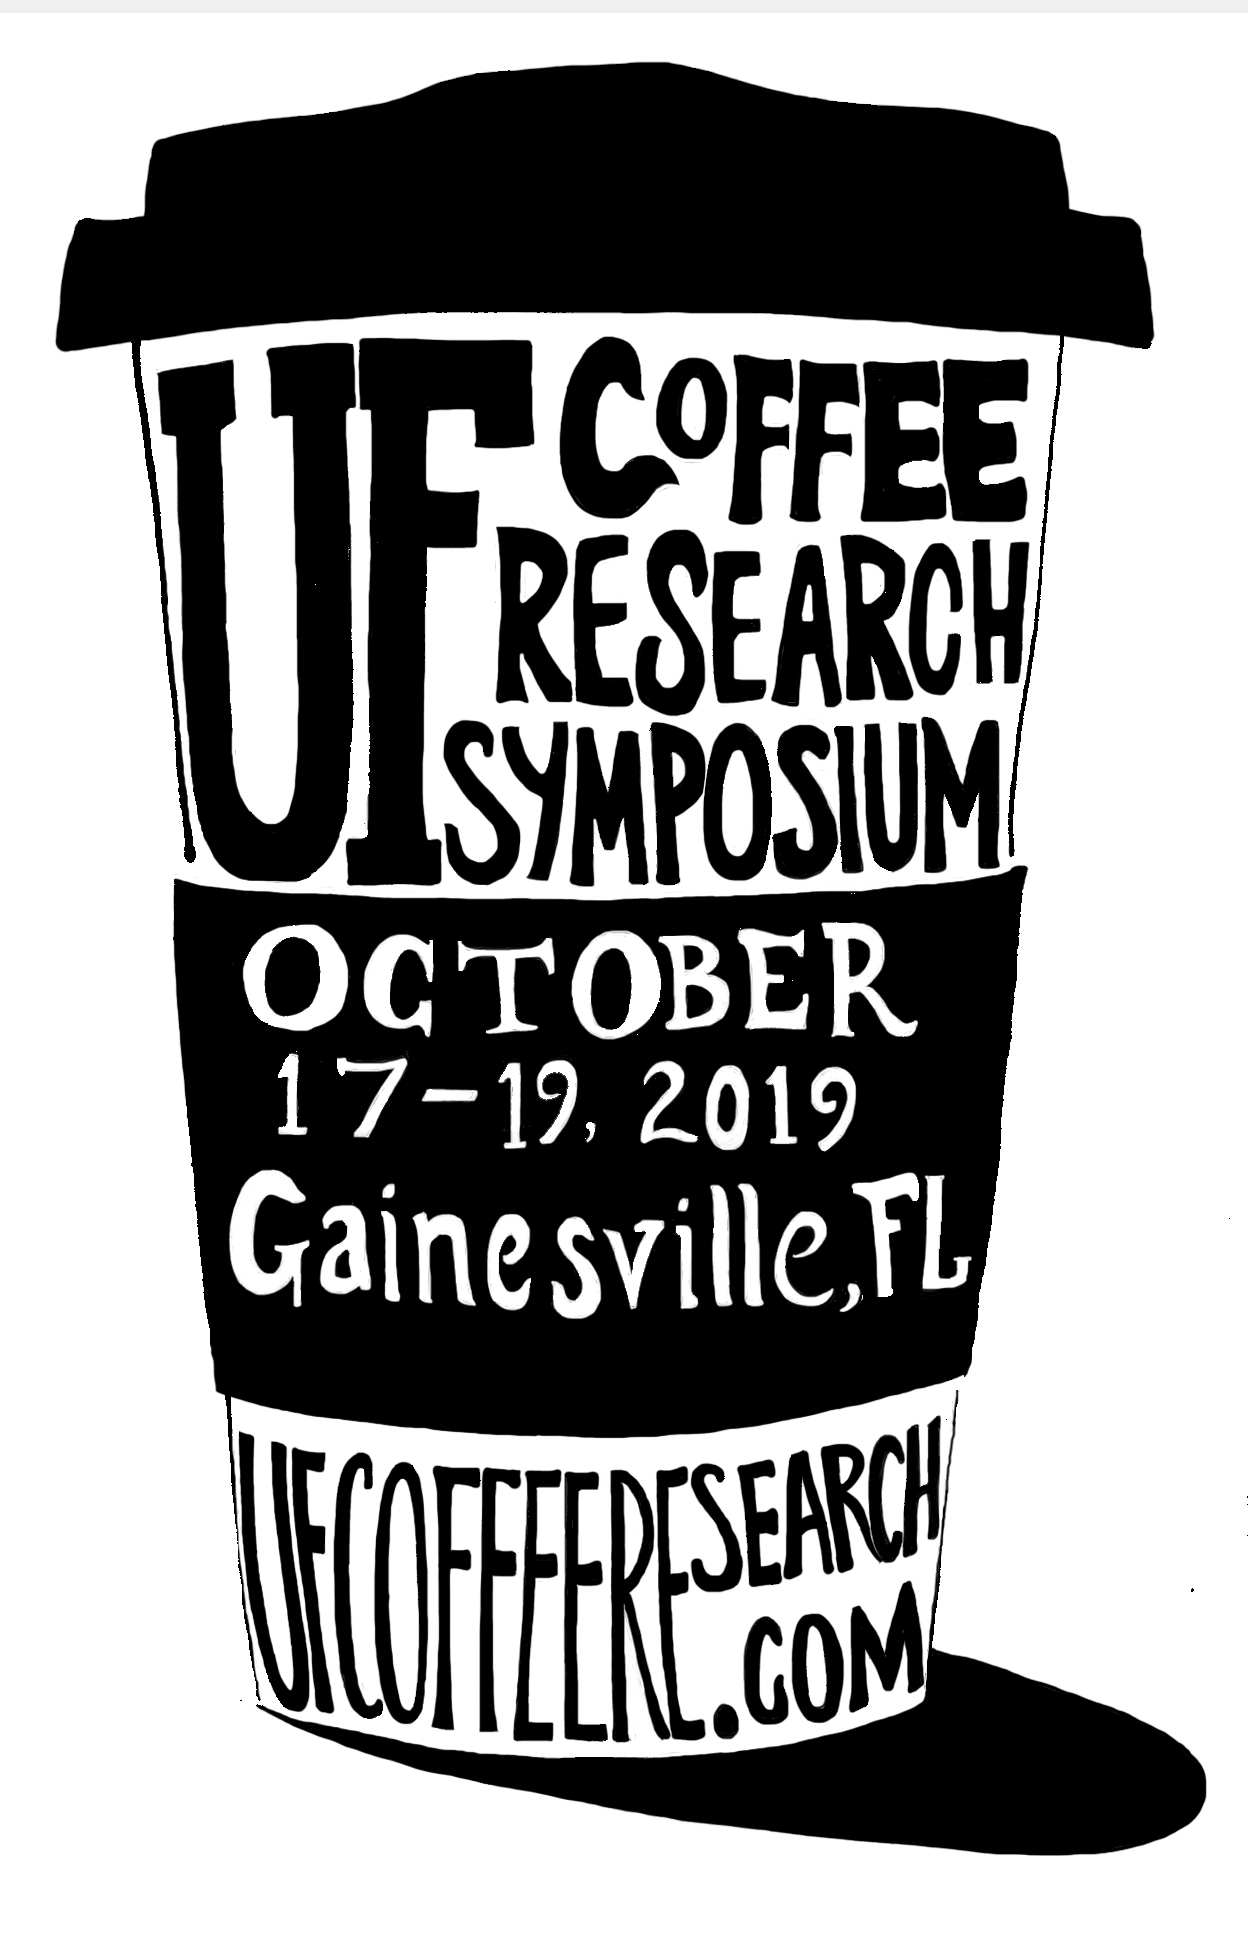 The coffee industry is really performative so I drew a sensual to-go cup for the UF Coffee Research Symposium. They're still looking for proposals!    www.ufcoffeeresearch.com